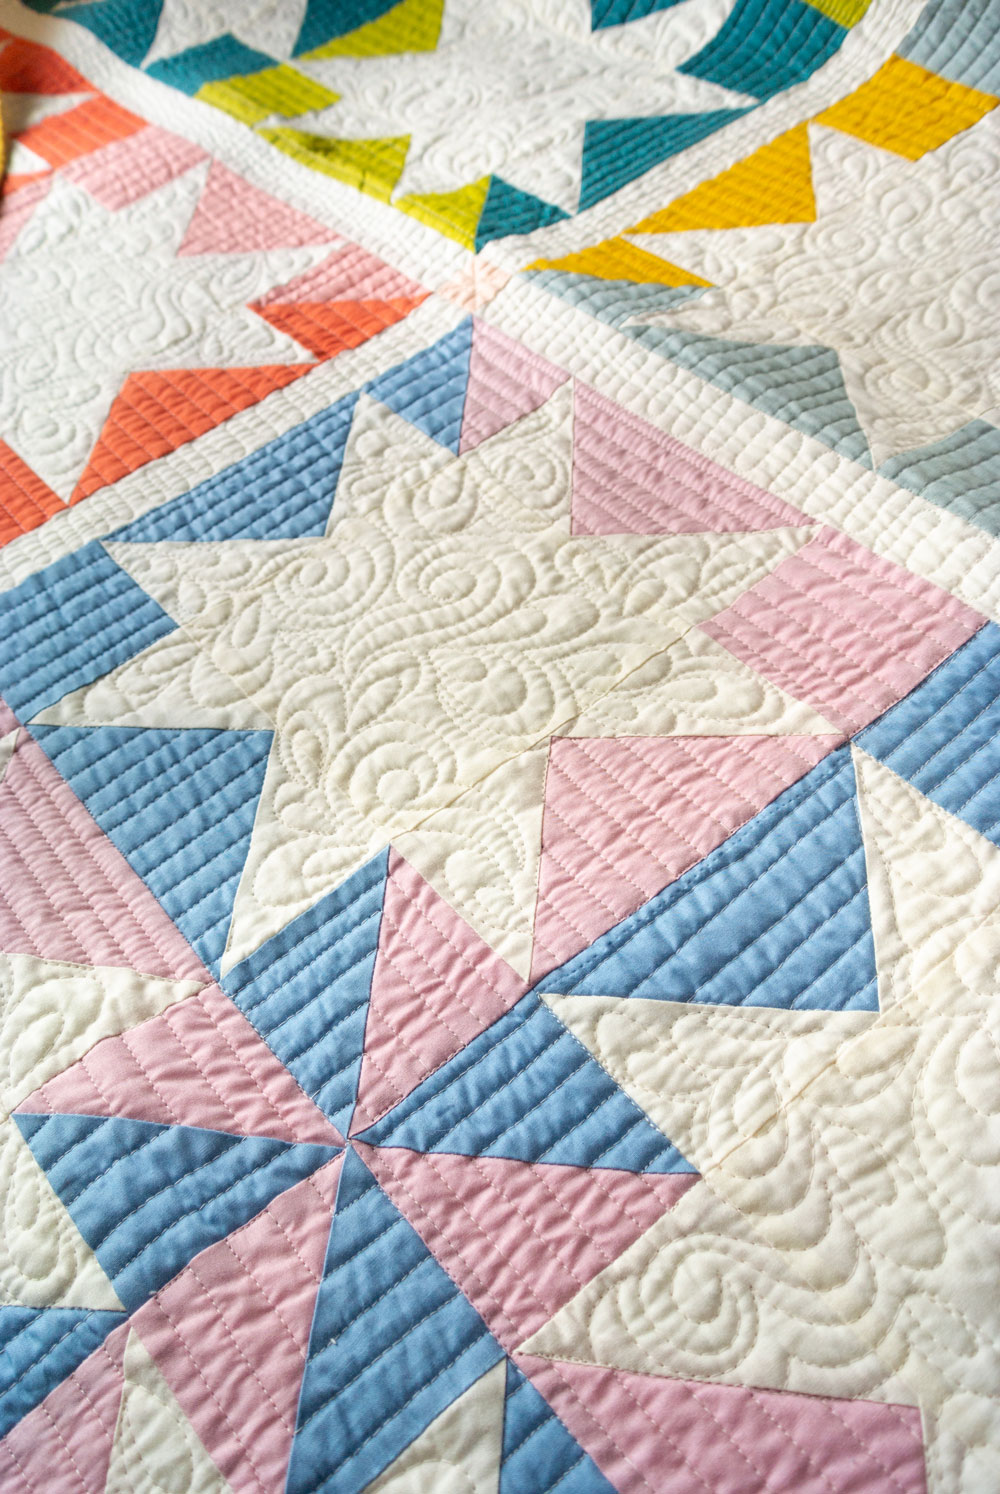 Your ultimate guide to longarm quilters in the USA and Canada. Find a quilter in your local area, or one that takes mail-in orders | Suzy Quilts - https://suzyquilts.com/ultimate-guide-to-longarm-quilters-in-the-usa-and-canada